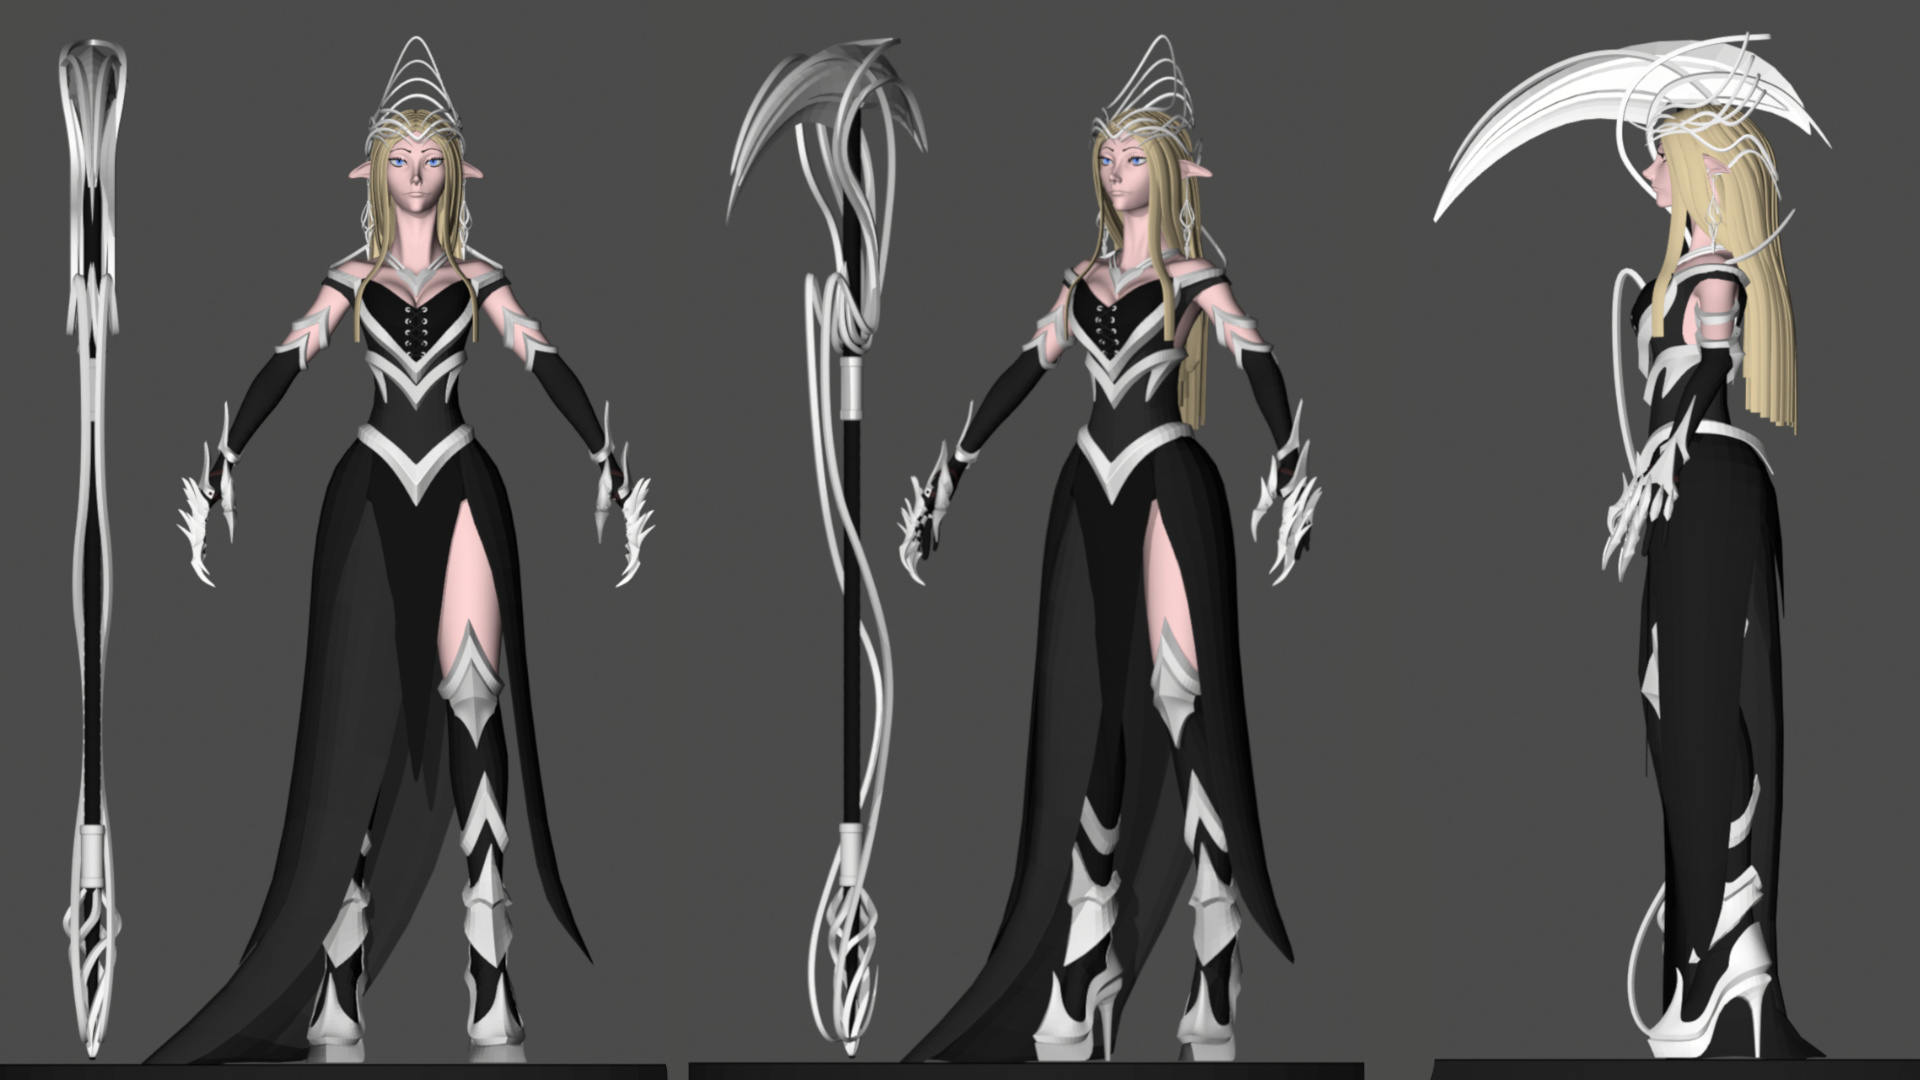 Elf_Judge_WIP_03